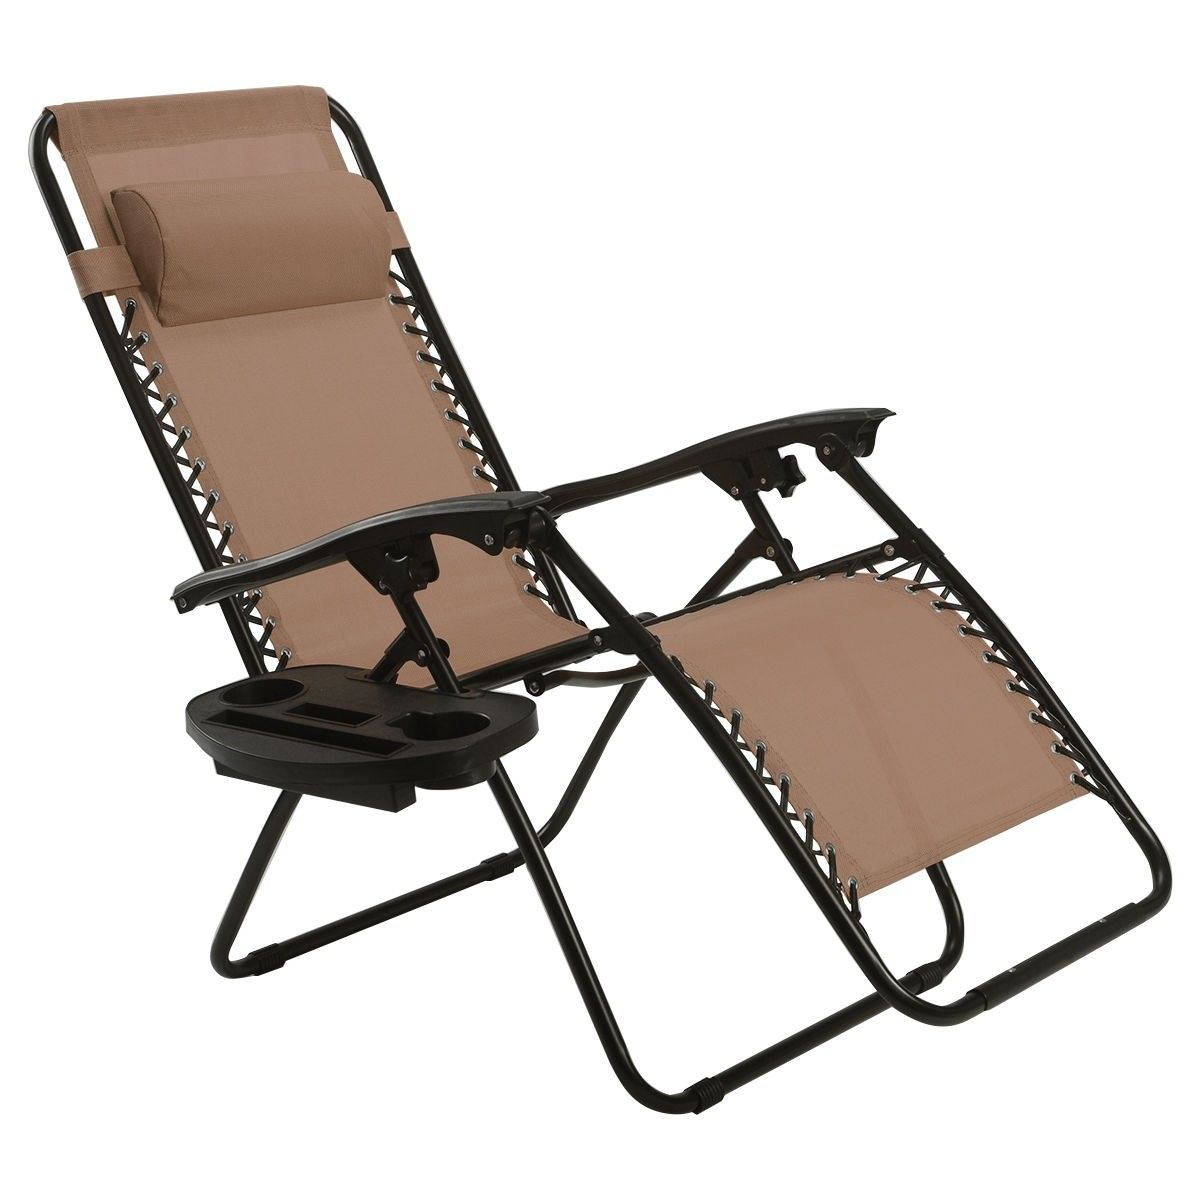 Outdoor Folding Zero Gravity Reclining Lounge Chair Zero Gravity Chair Outdoor Lounge Chair Outdoor Gravity Chair